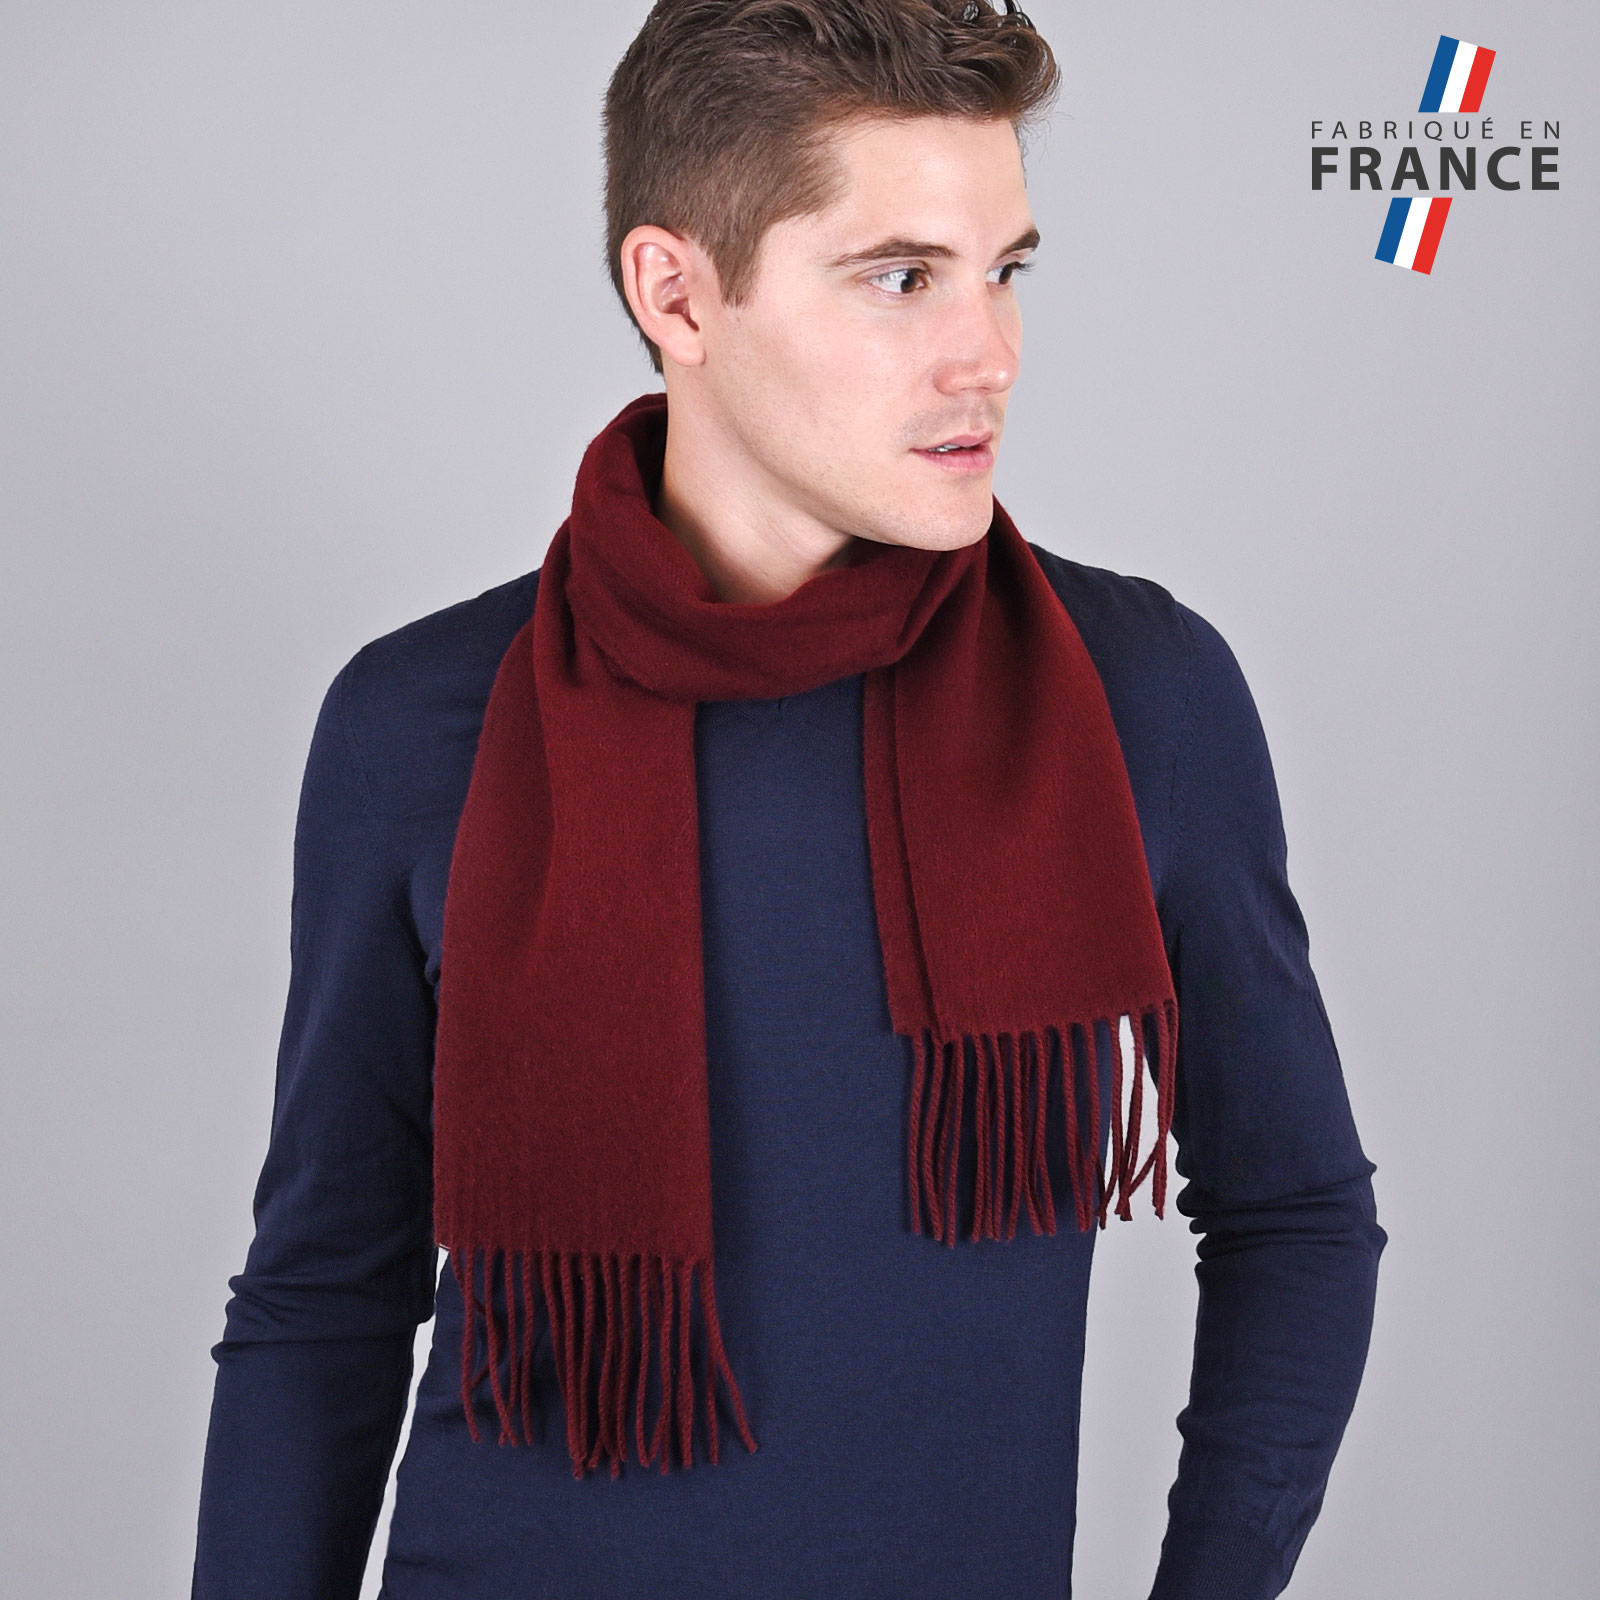 AT-03435-VH16-LB_FR-echarpe-homme-bordeaux-franges-fabrication-france